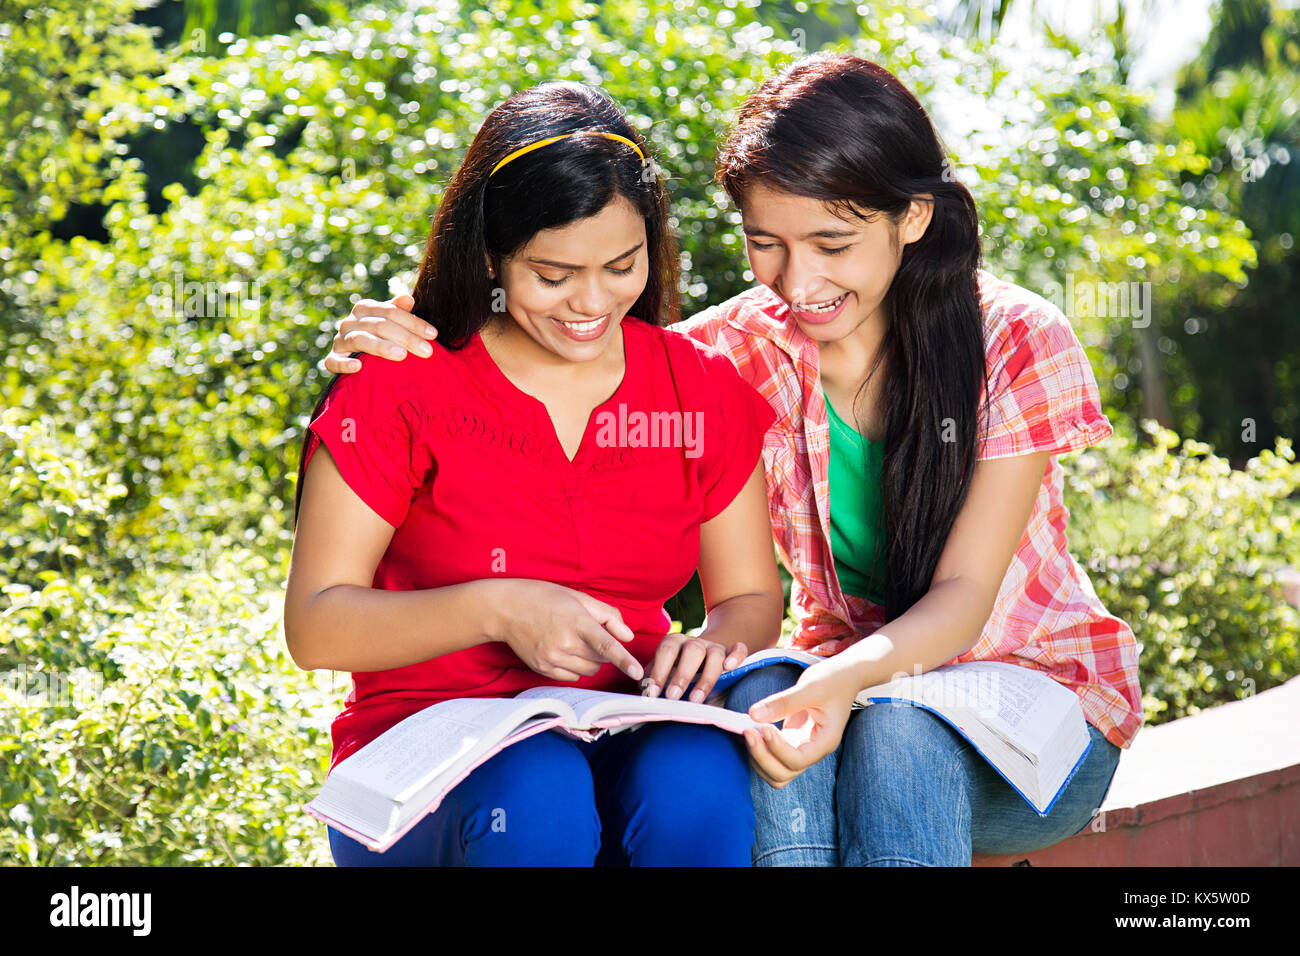 indian college girl studying